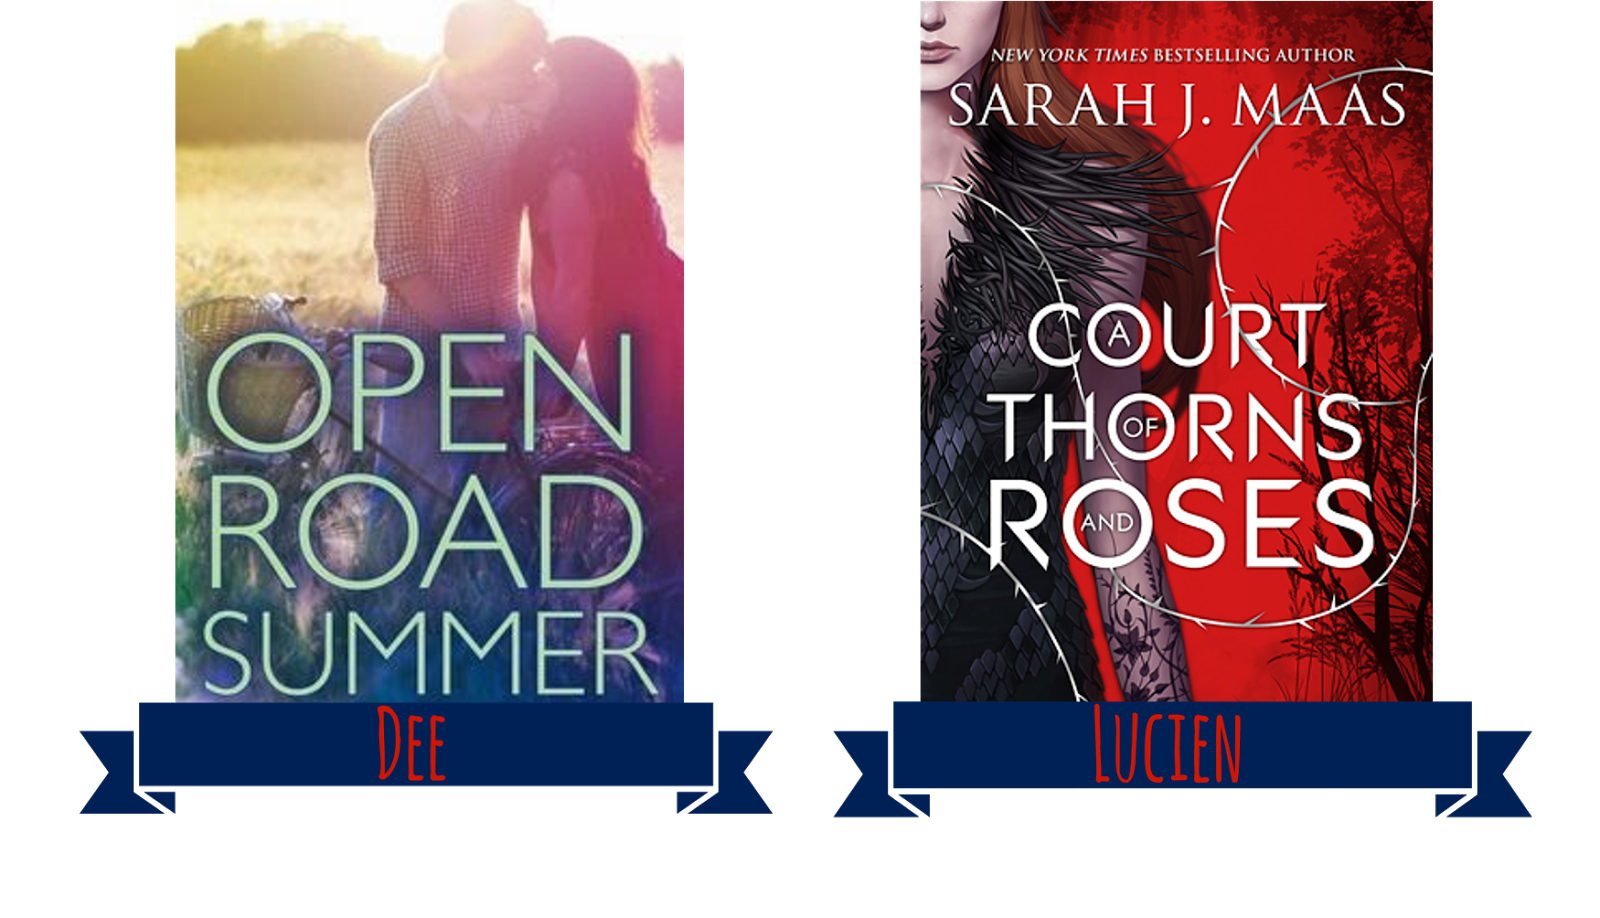 Open Road Summer + A Court of Thorns and Roses book covers